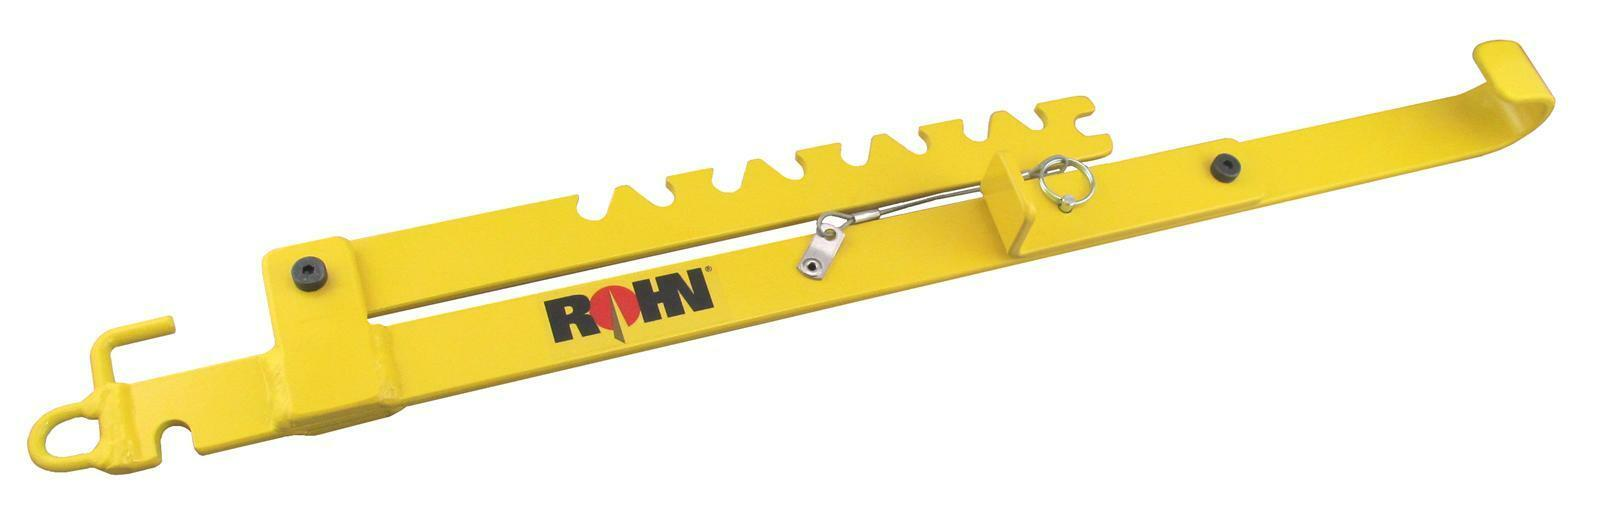 ROHNJACK G Series Tower Assembly & Disassembly Tool for ROHN Tower. Buy it now for 265.00